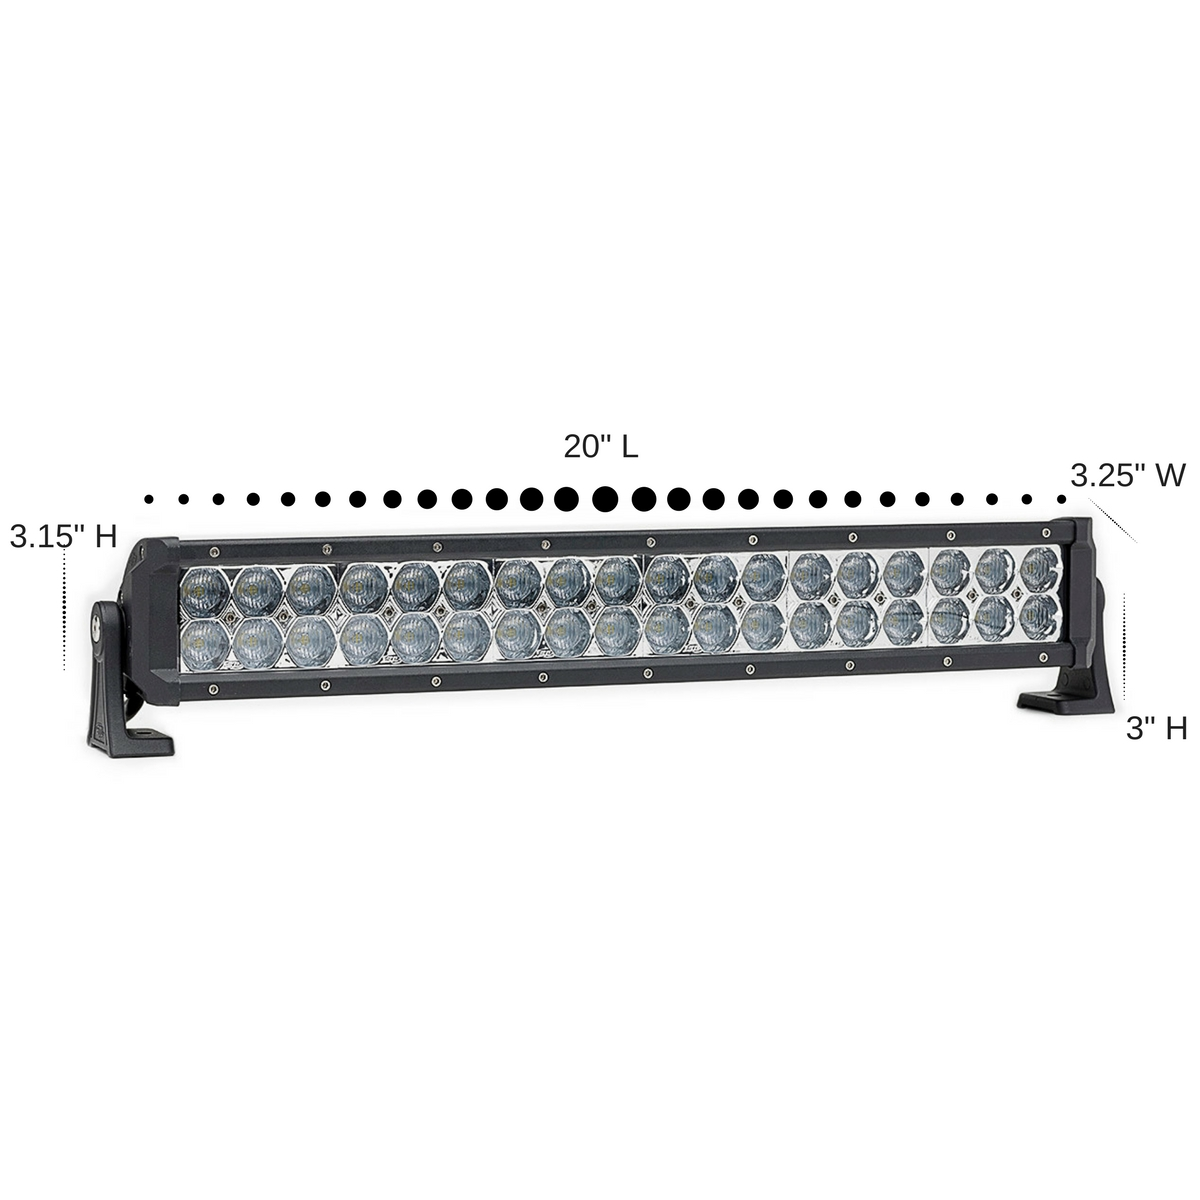 Dual carbine 50 dual carbine 20 inch led light bar stl bundle dual carbine 50 inch led light bar dimensions mozeypictures Image collections